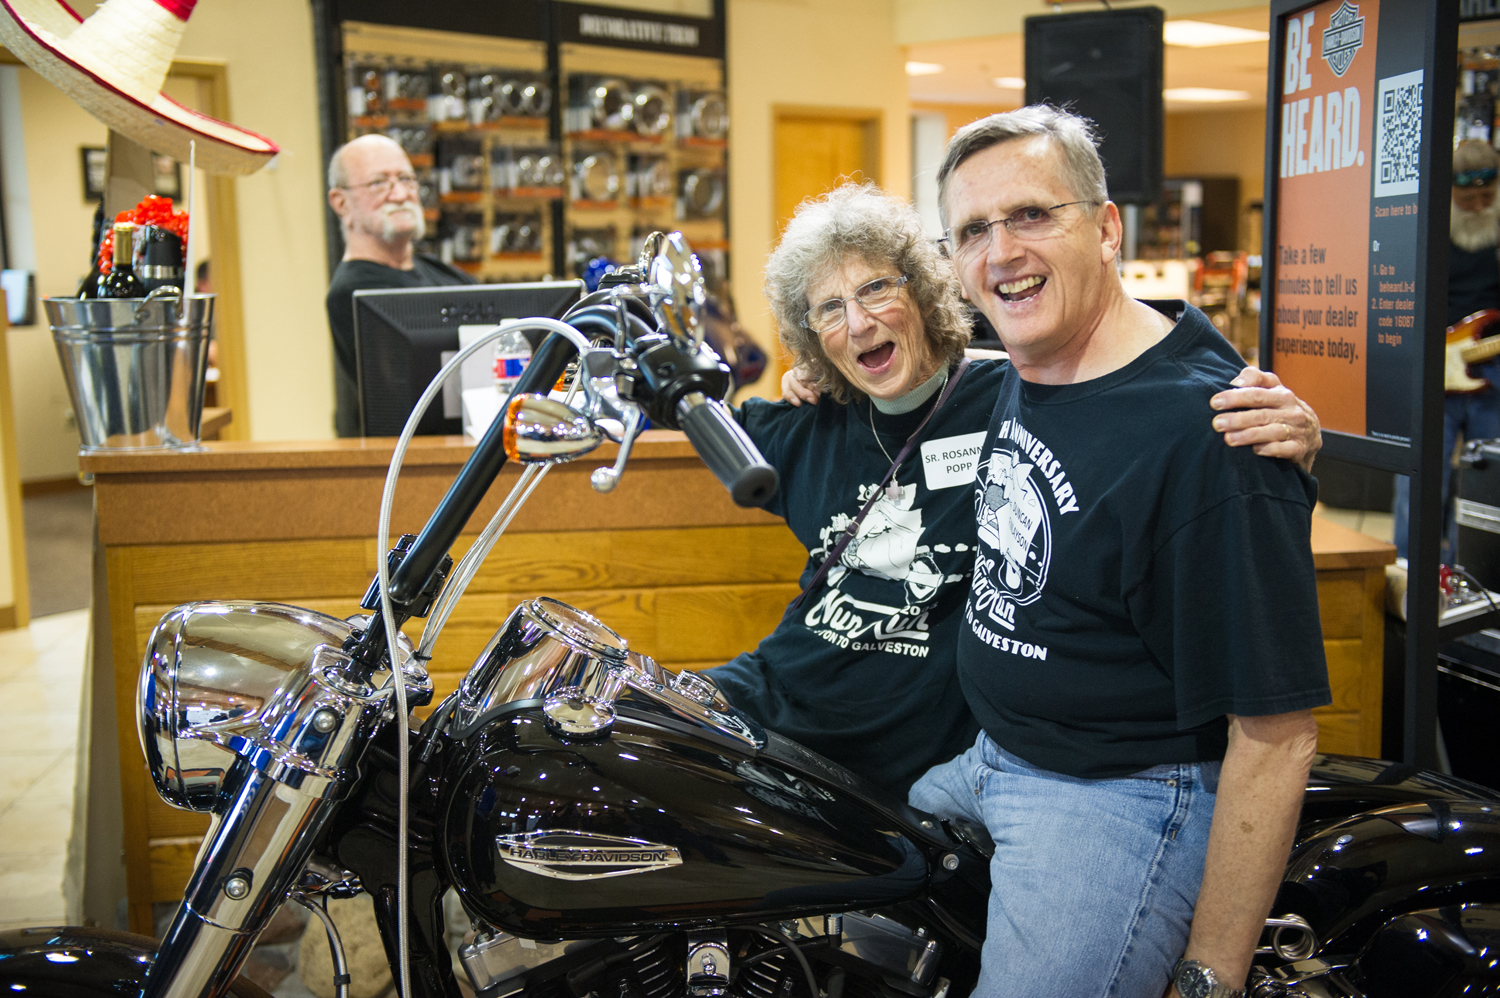 Sister Rosanne Popp MD, original event co-creator and Duncan Finlayson, kickoff the 11th Annual Nun Run on Aug. 12 at Stubbs Harley-Davidson.